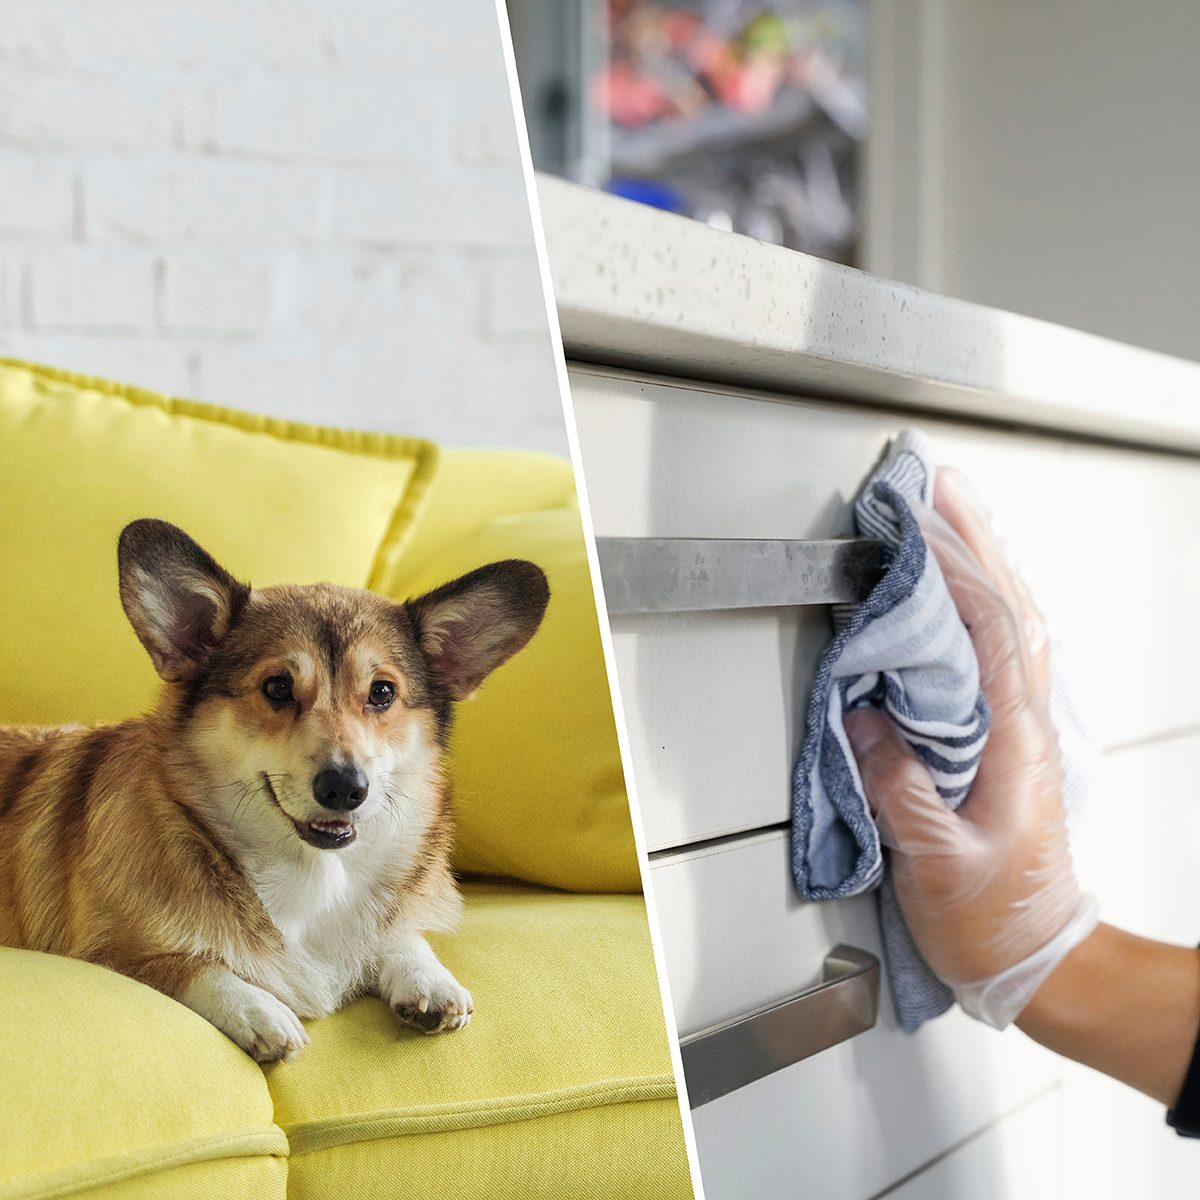 adorable corgi dog lying on yellow couch at home/a hand Wiping table surfaces